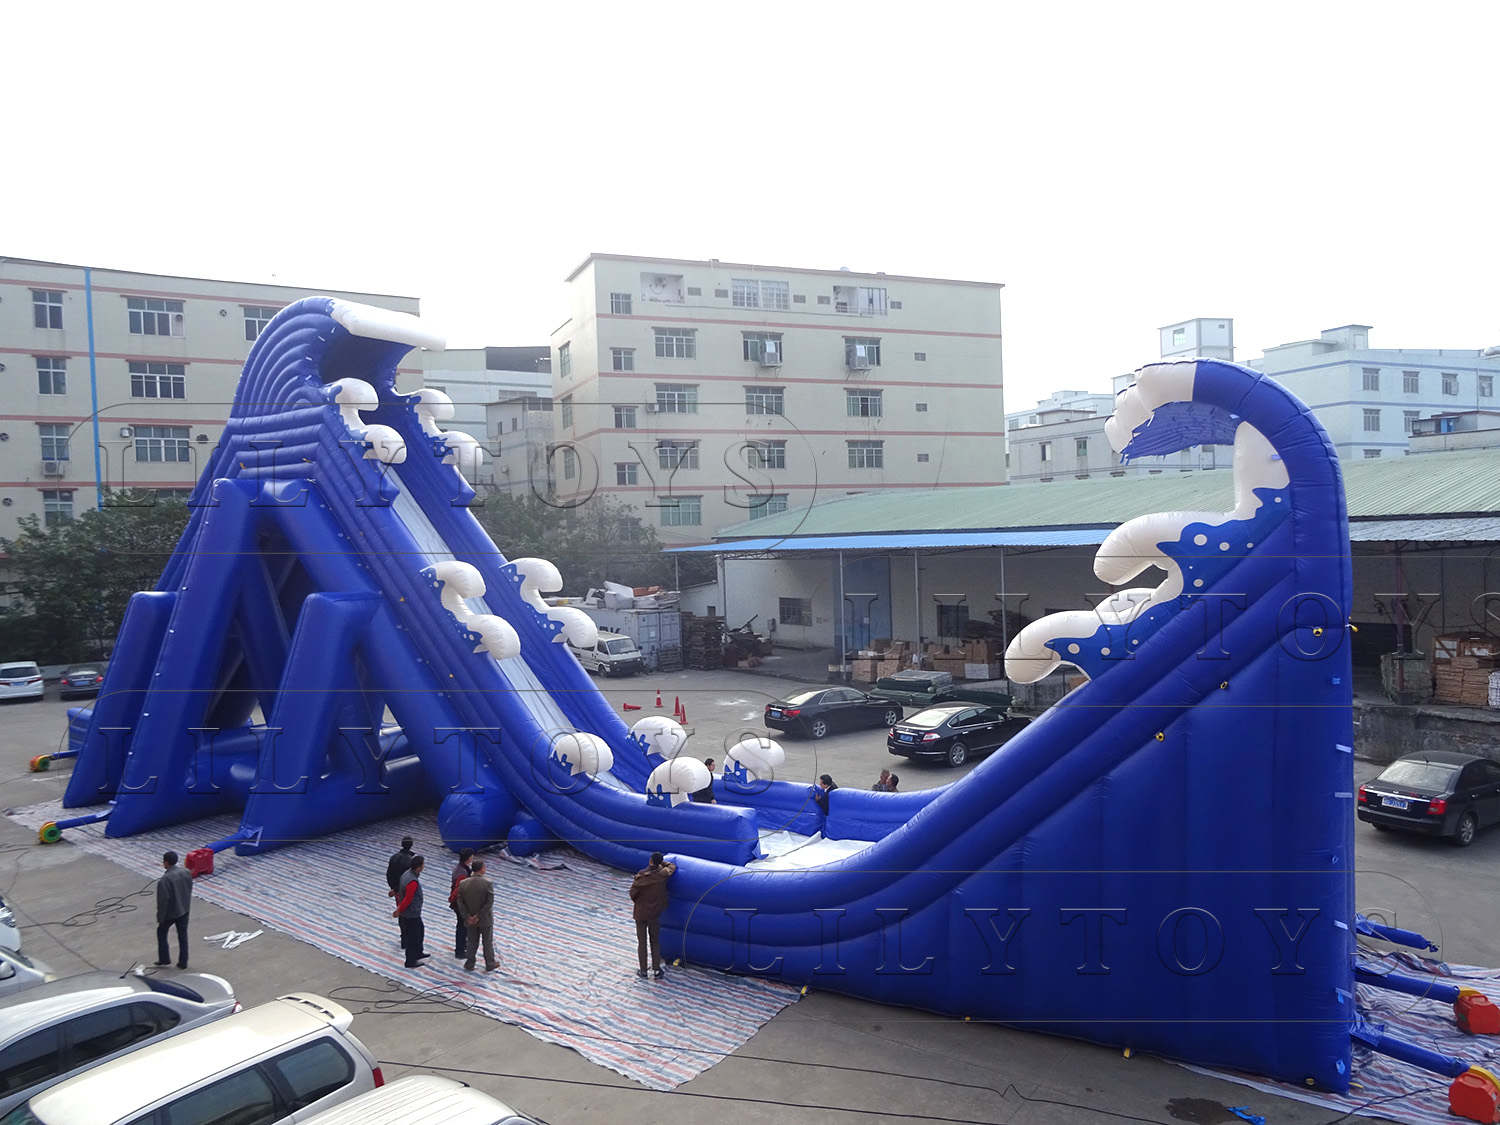 NEW double wave inflatable slide